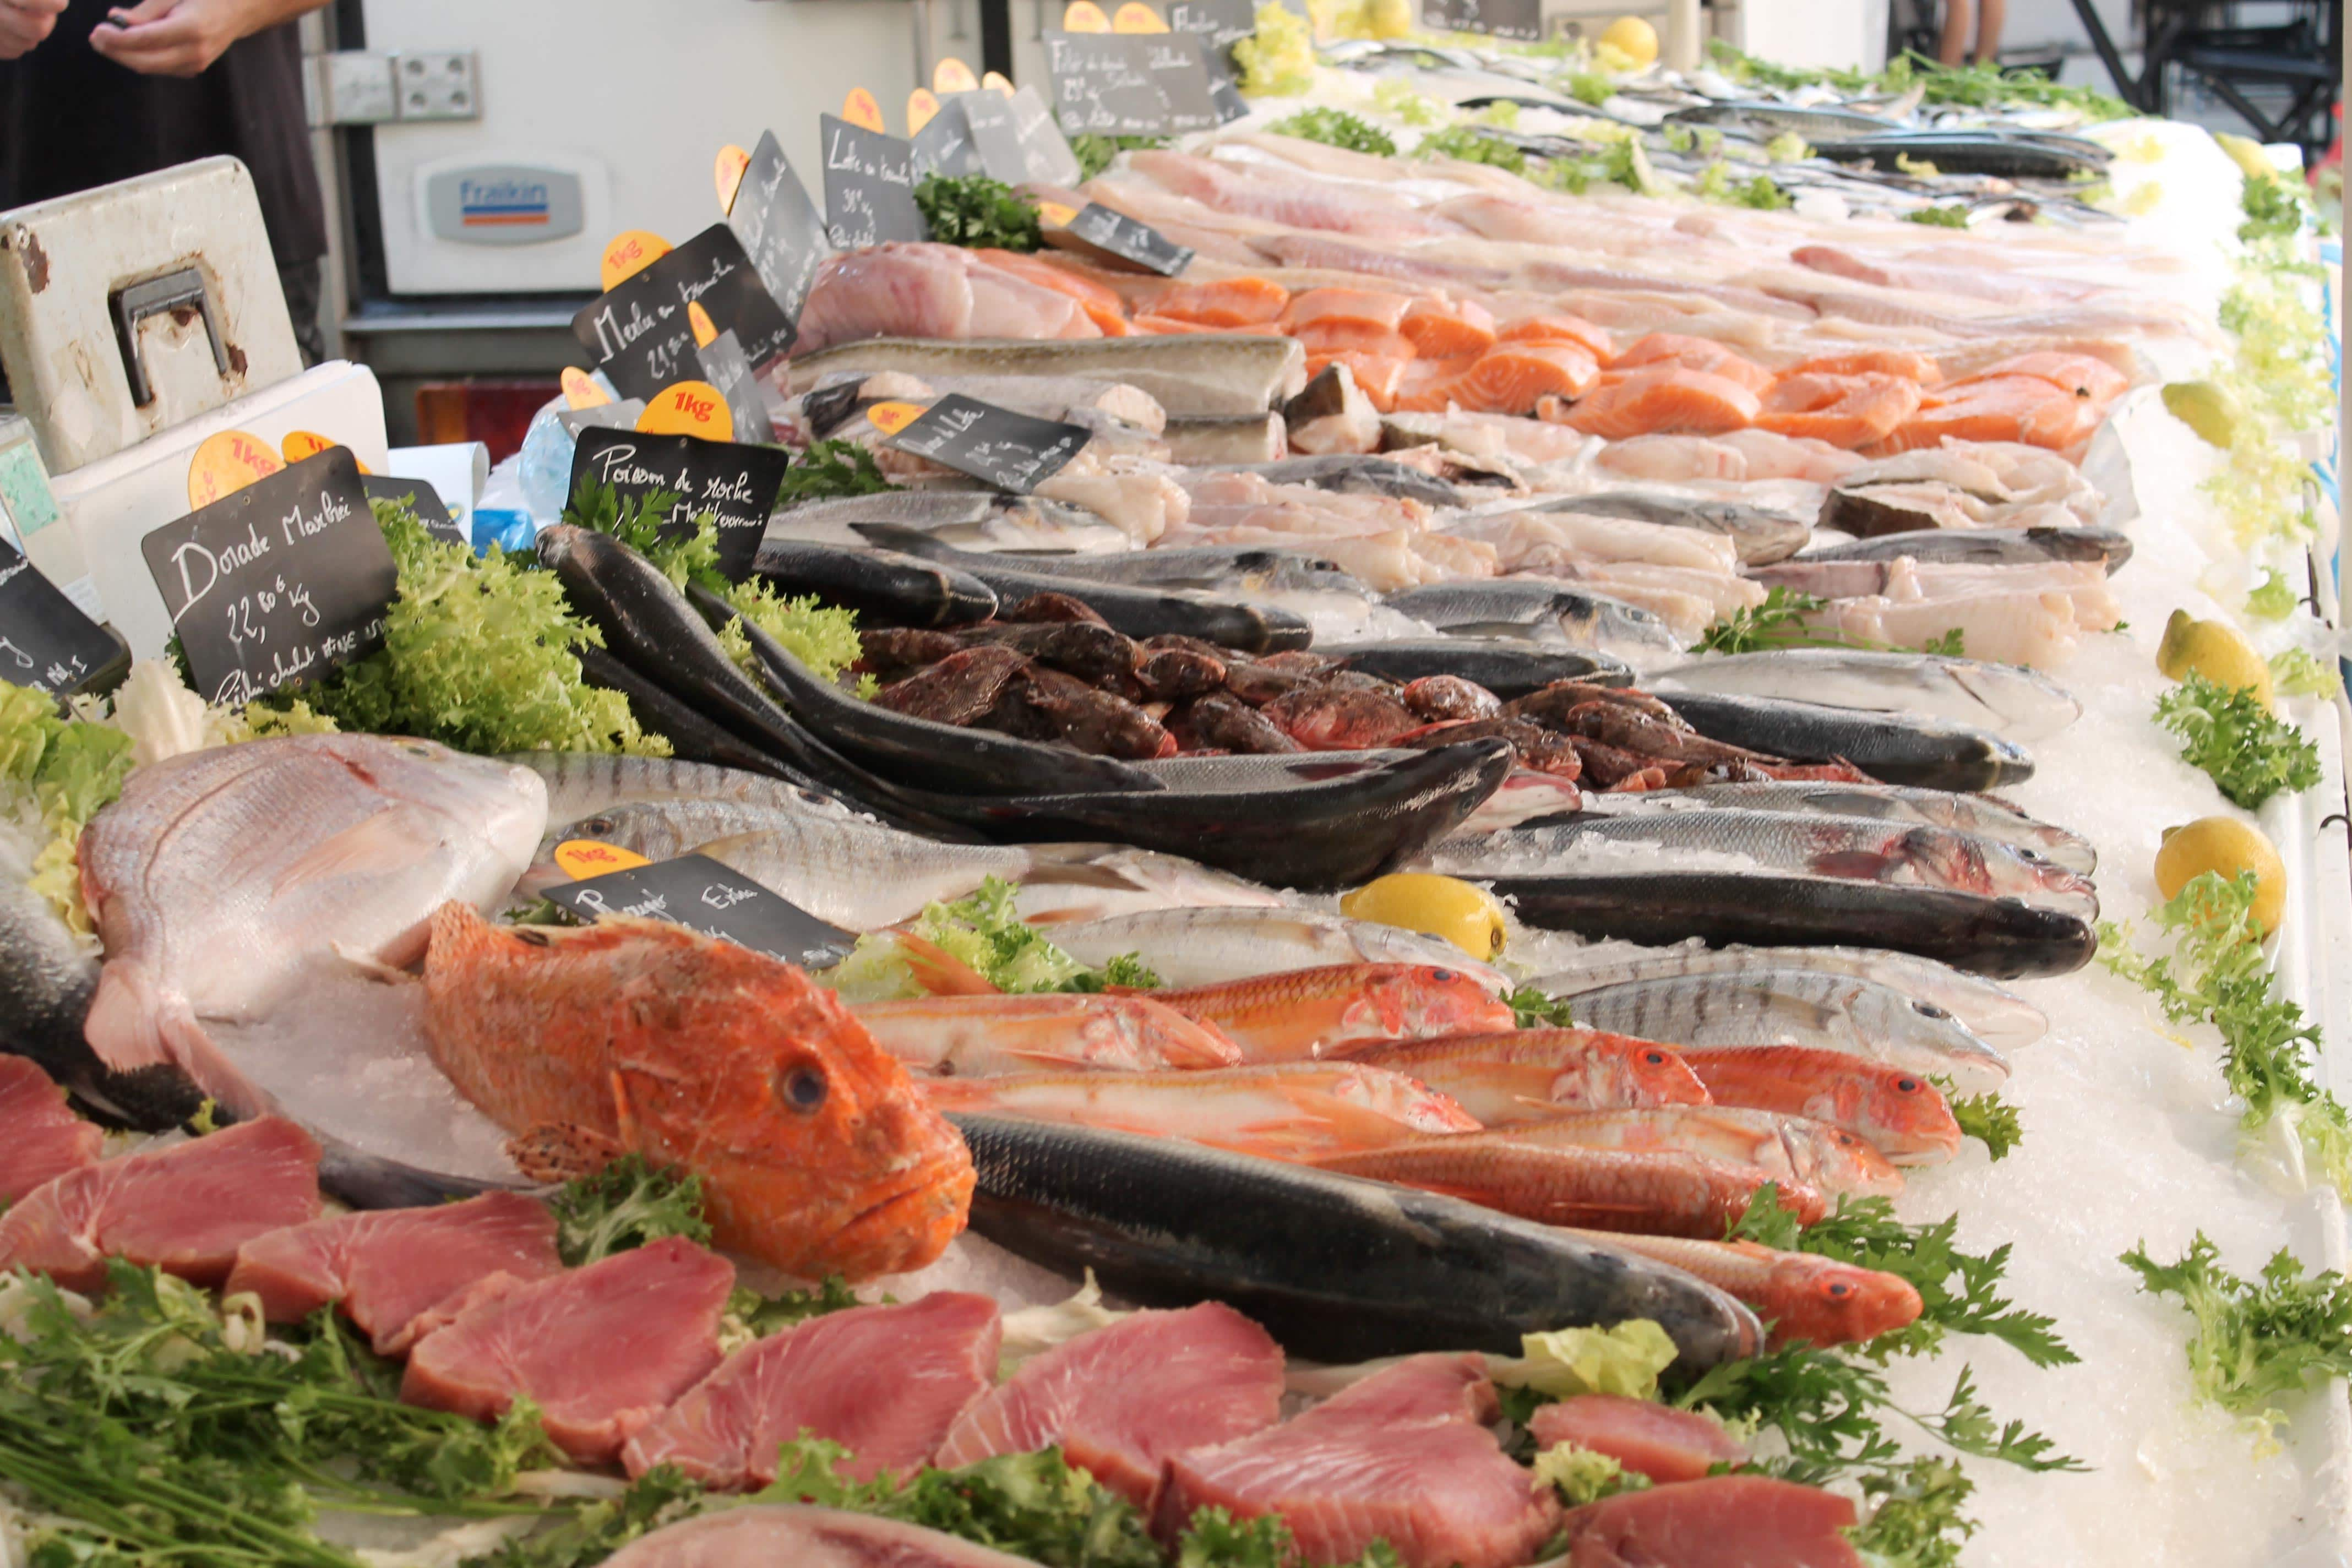 Shore excursion, fish stall, Aix en Provence